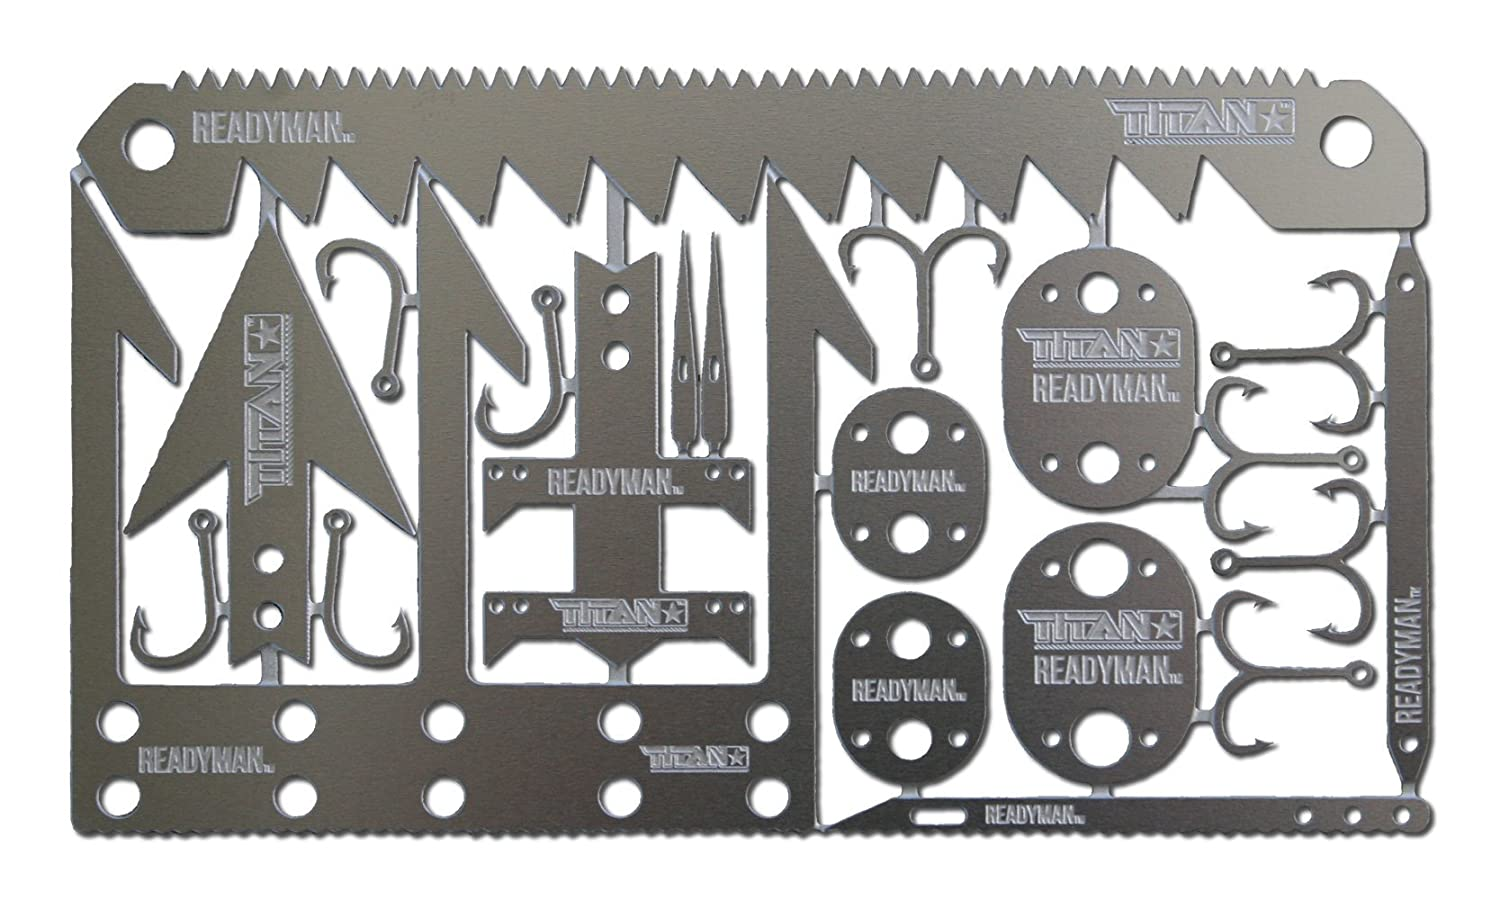 22-in-1 Credit Card Sized Emergency Tool